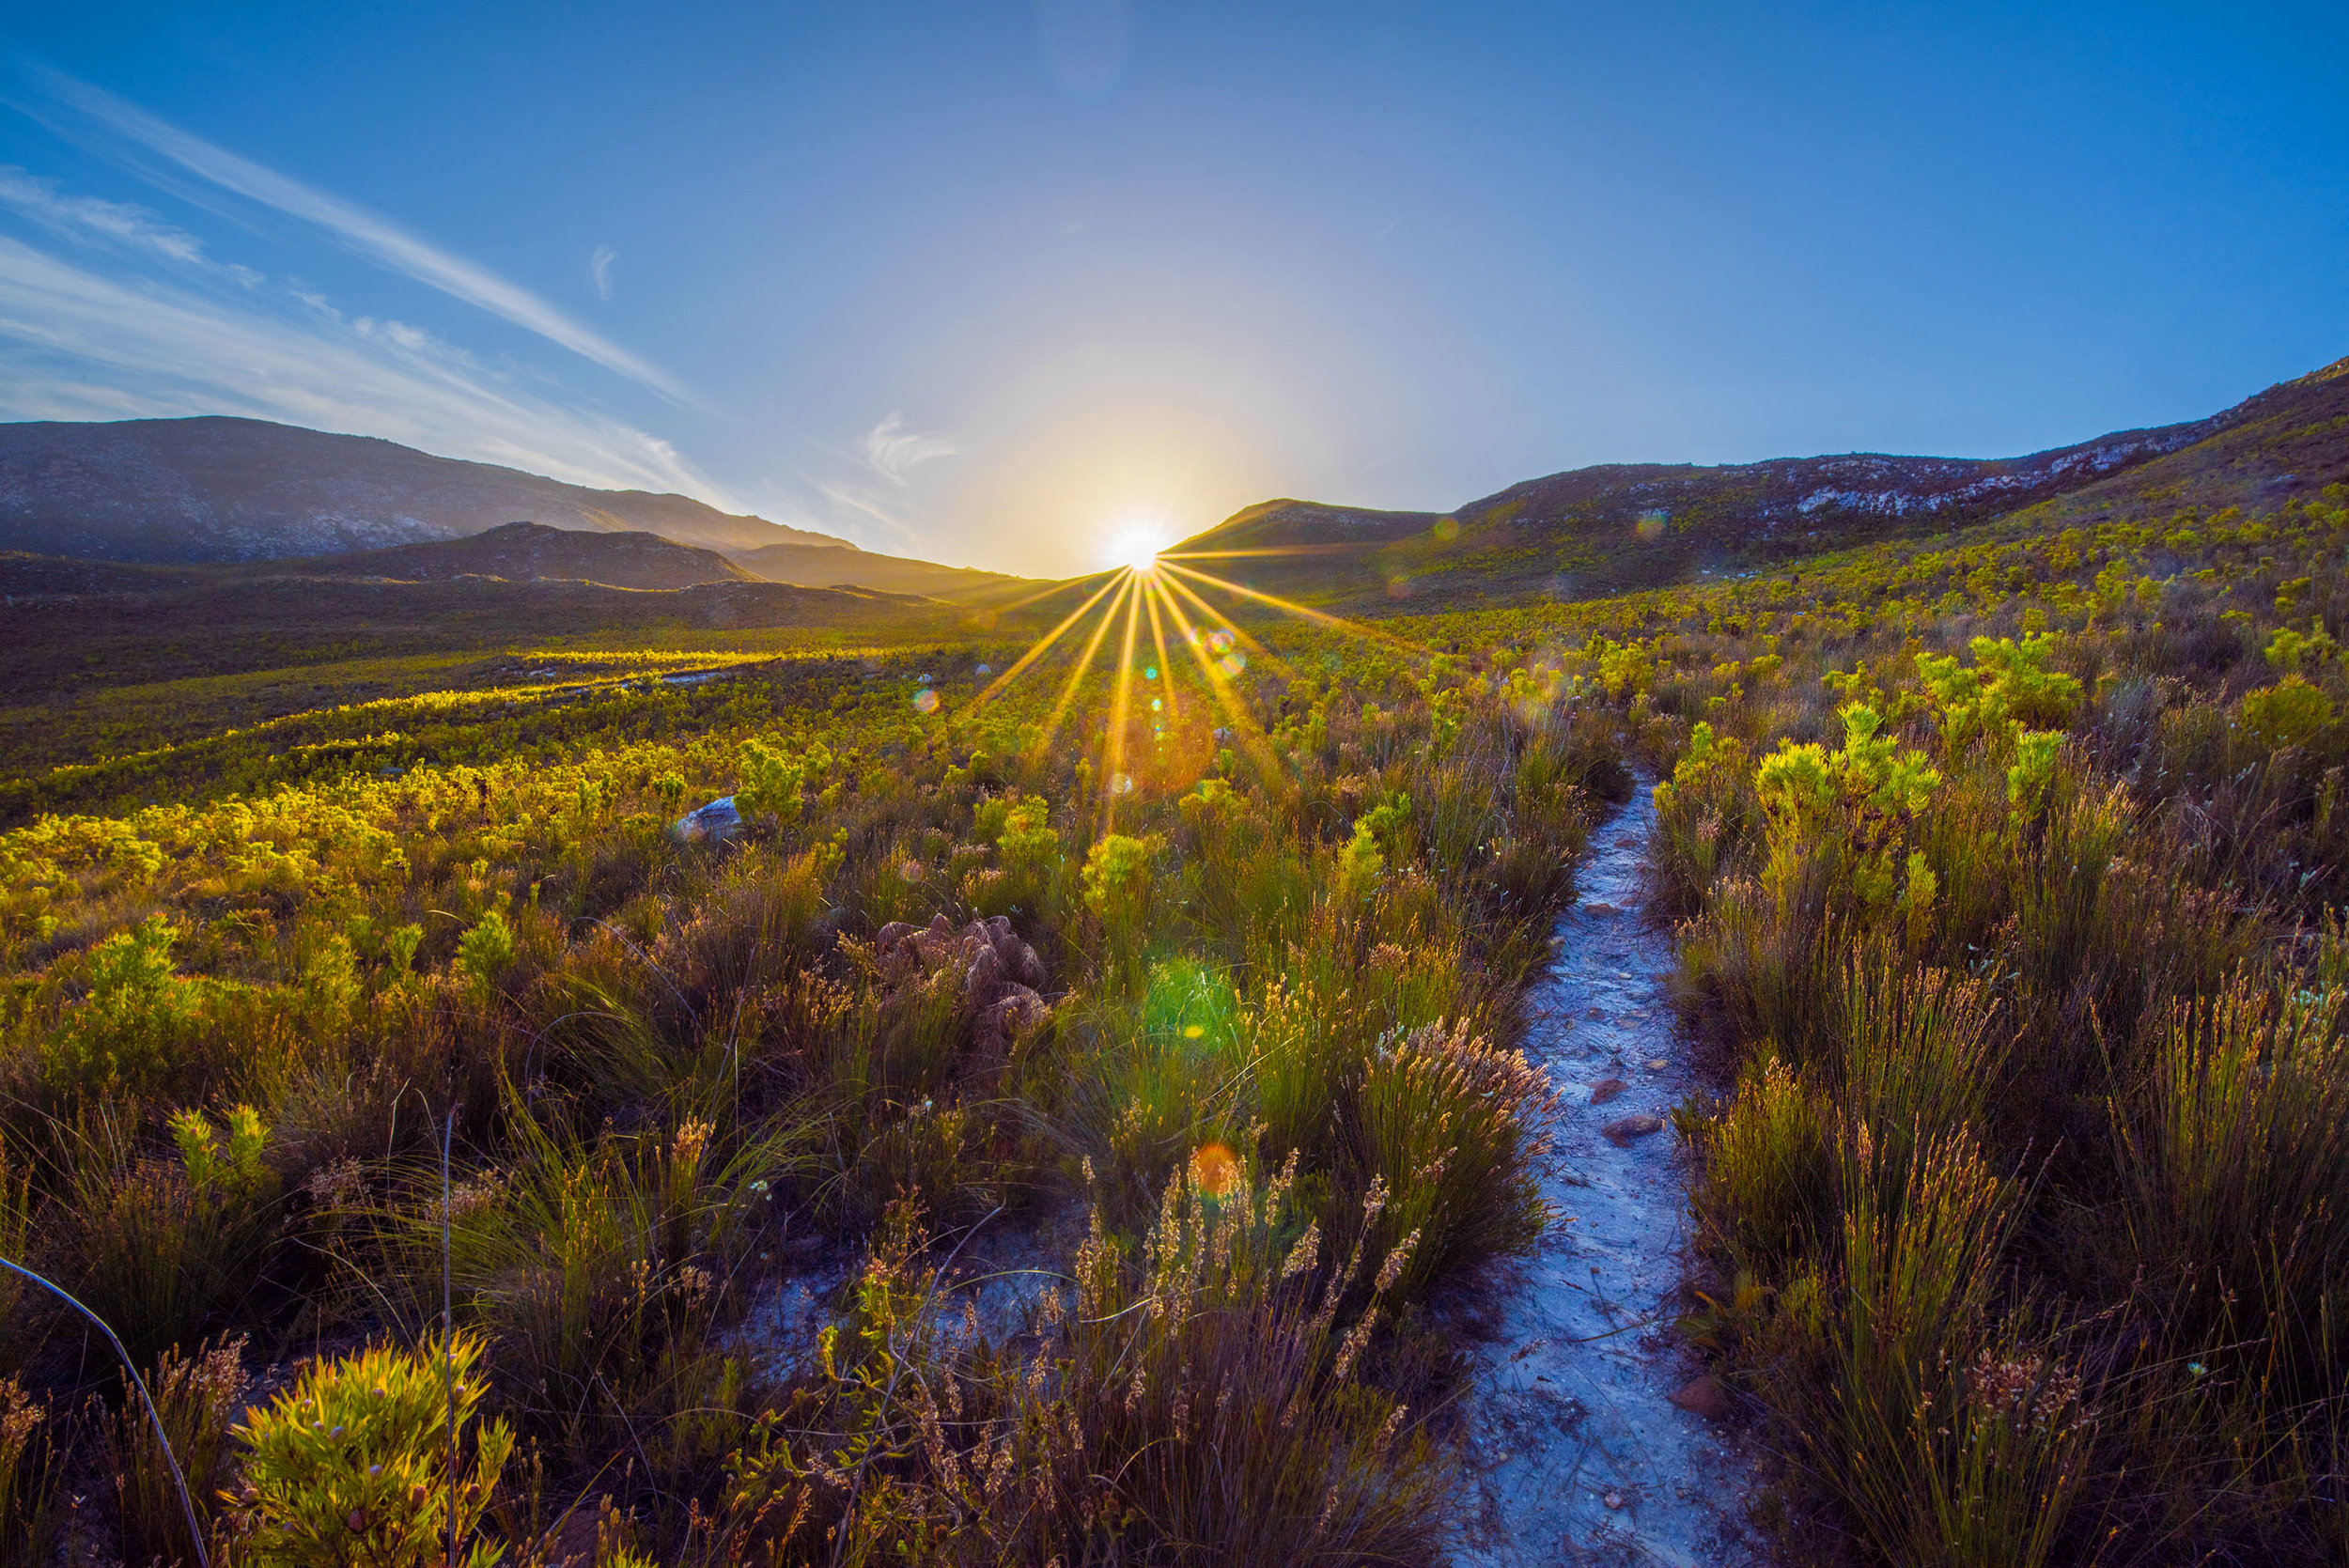 A trail winds up into the hills on the grounds of the Kolkol Mountain Lodge near Botrivier, South Africa.